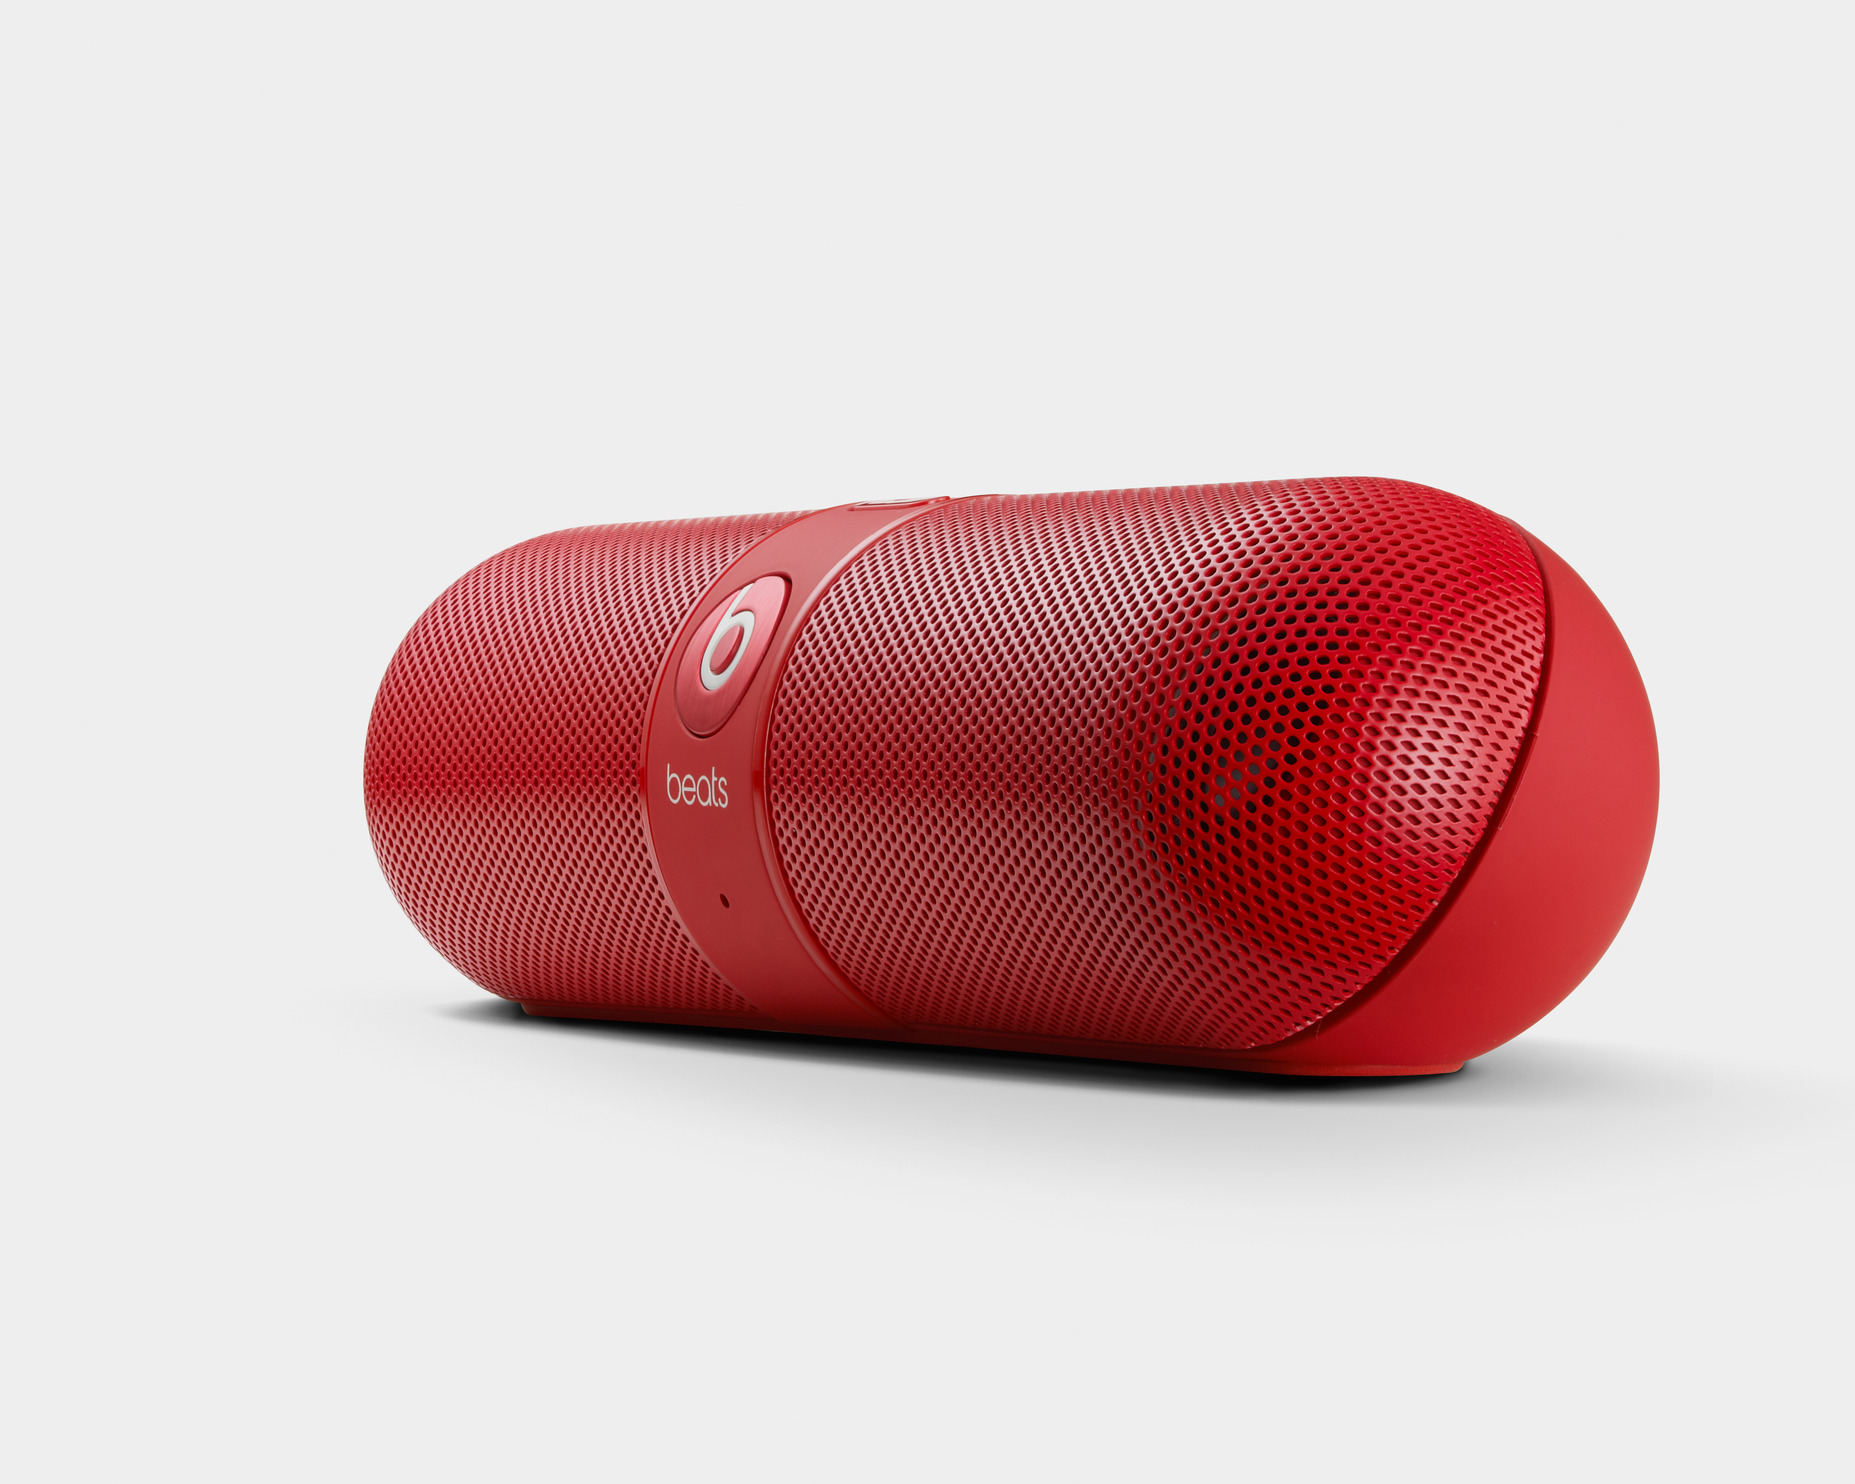 Beats Pill Wireless Speaker: Good sounds come in small, medicinal looking packages